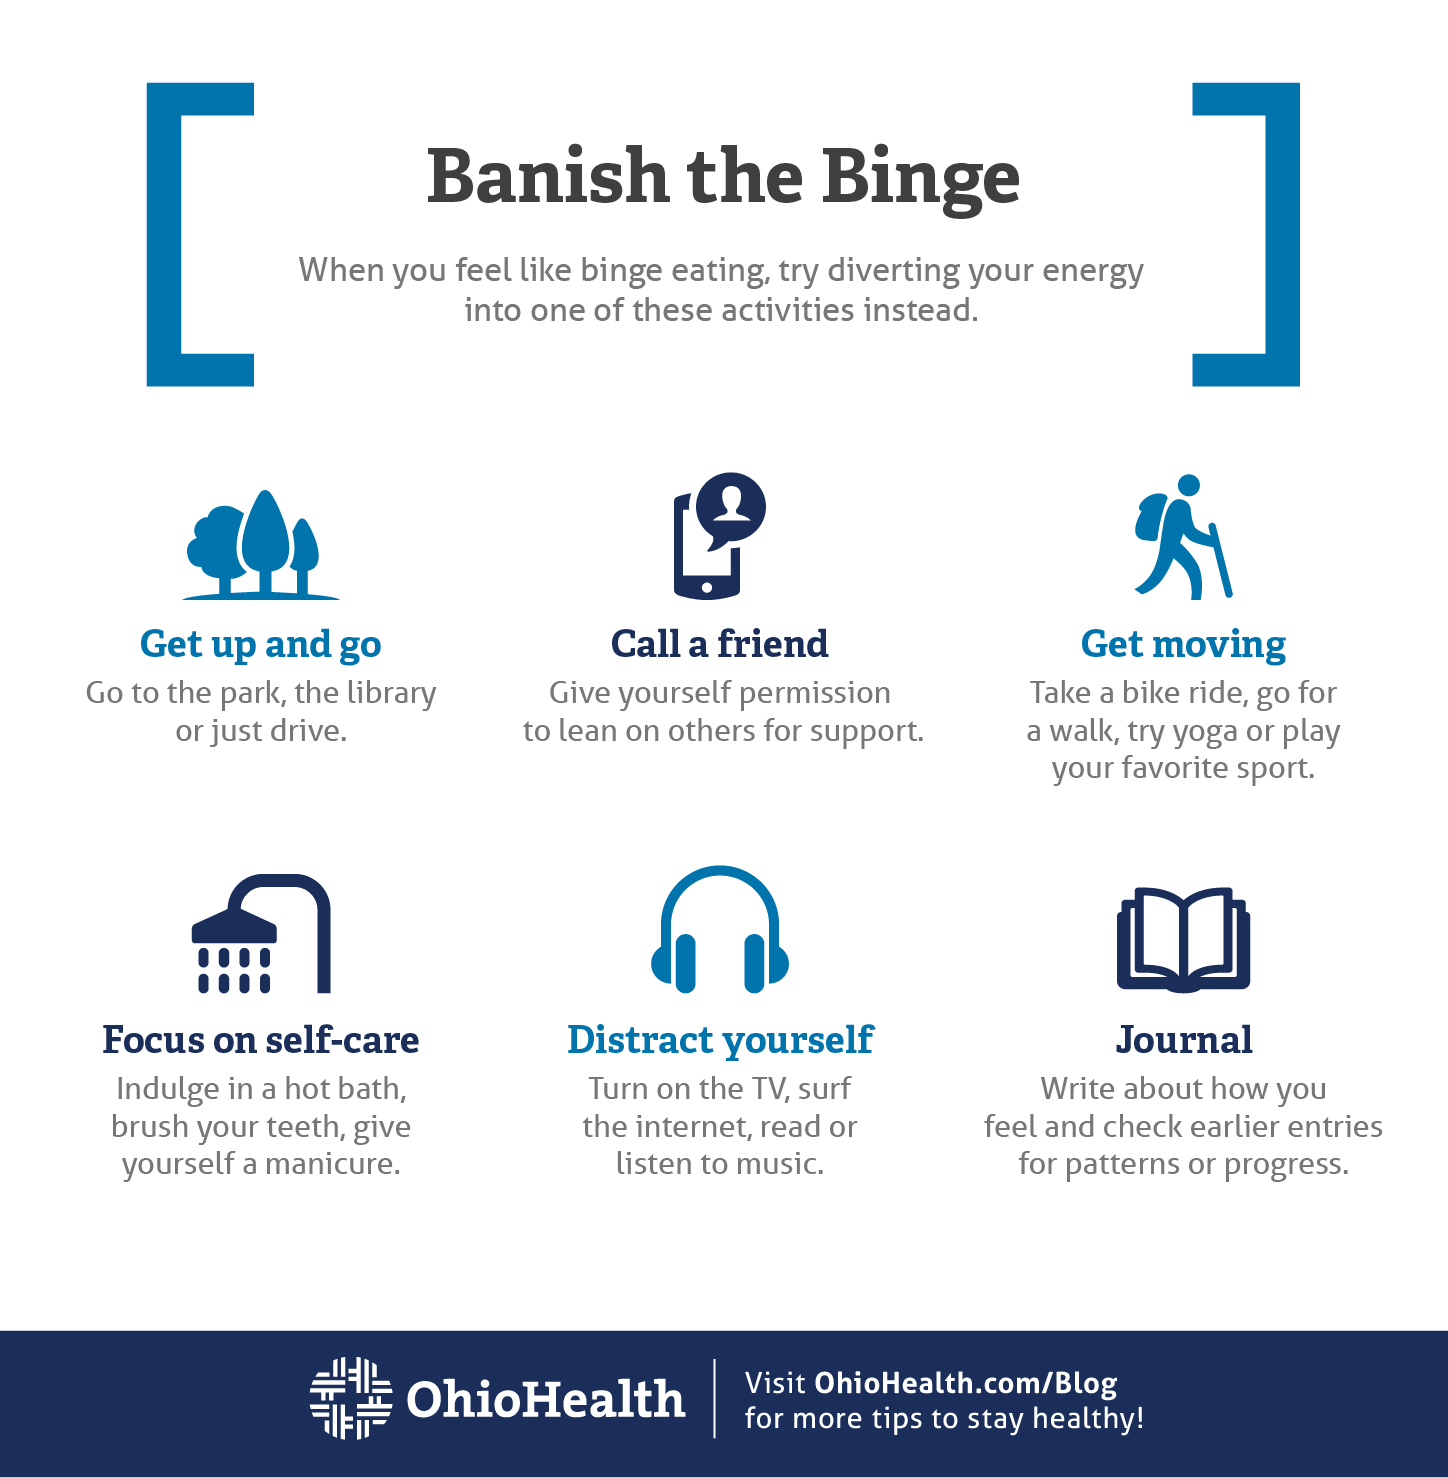 Infographic with tips for diverting your energy when feeling like binge eating